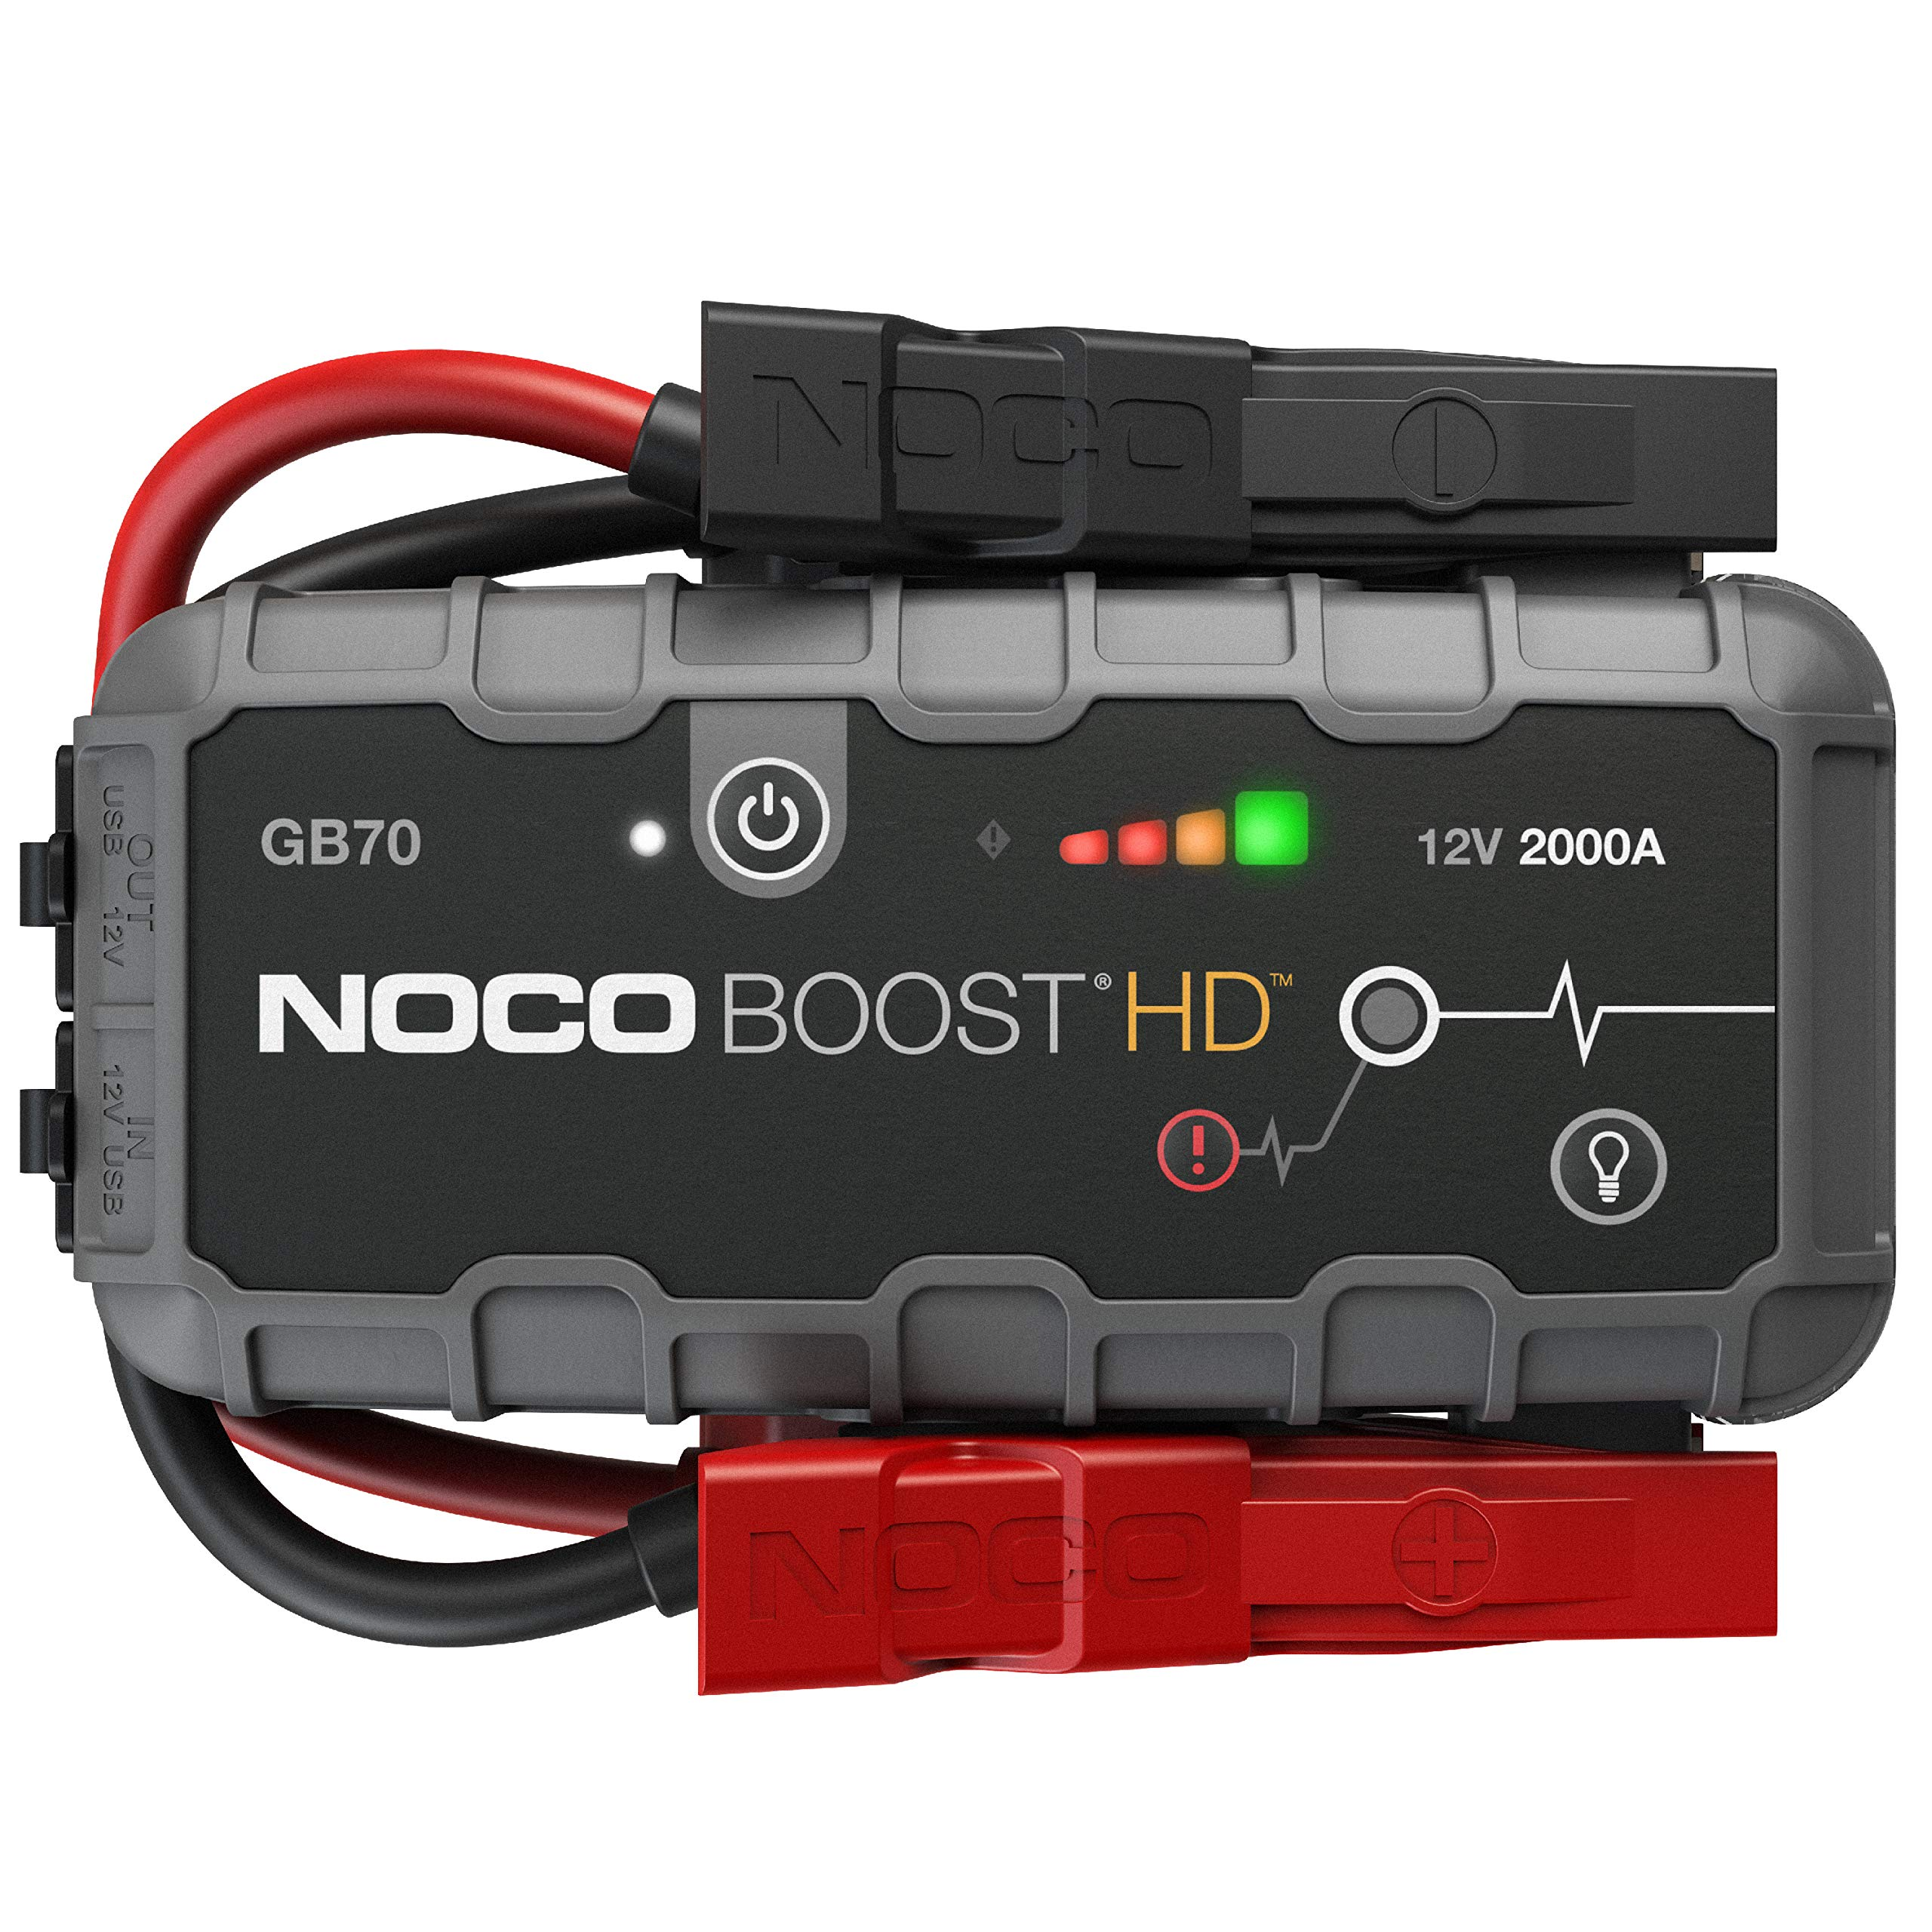 NOCO Boost HD GB70 2000 Amp 12-Volt UltraSafe Portable Lithium Jump Starter, Car Battery Booster Pack, And Jump Leads For Up To 8-Liter Gasoline And 6-Liter Diesel Engines